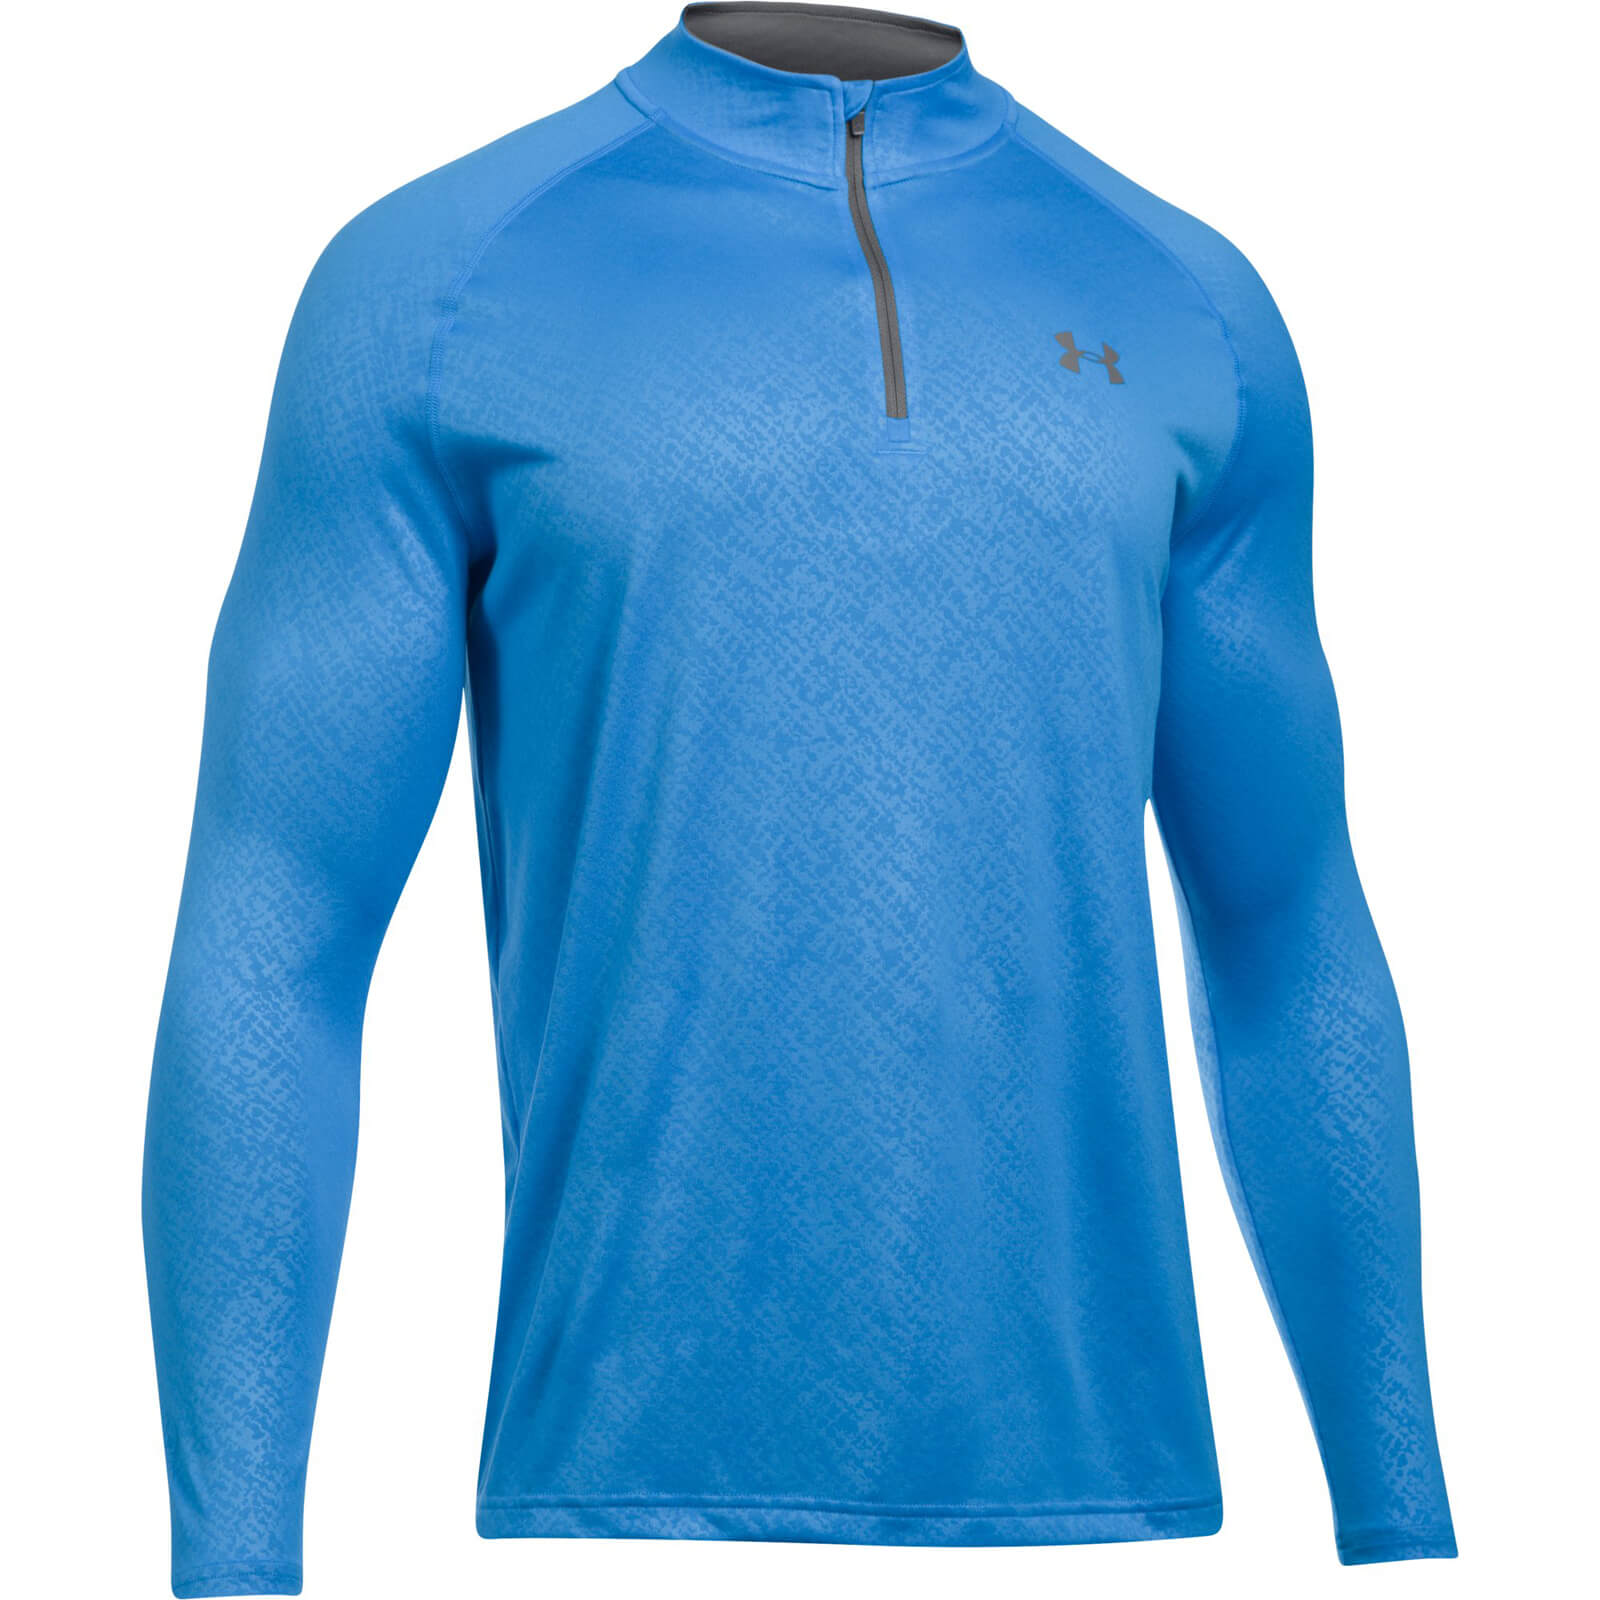 8fdf9ecdf Under Armour Men's Tech Emboss 1/4 Zip Long Sleeve Top - Blue Sports &  Leisure | TheHut.com